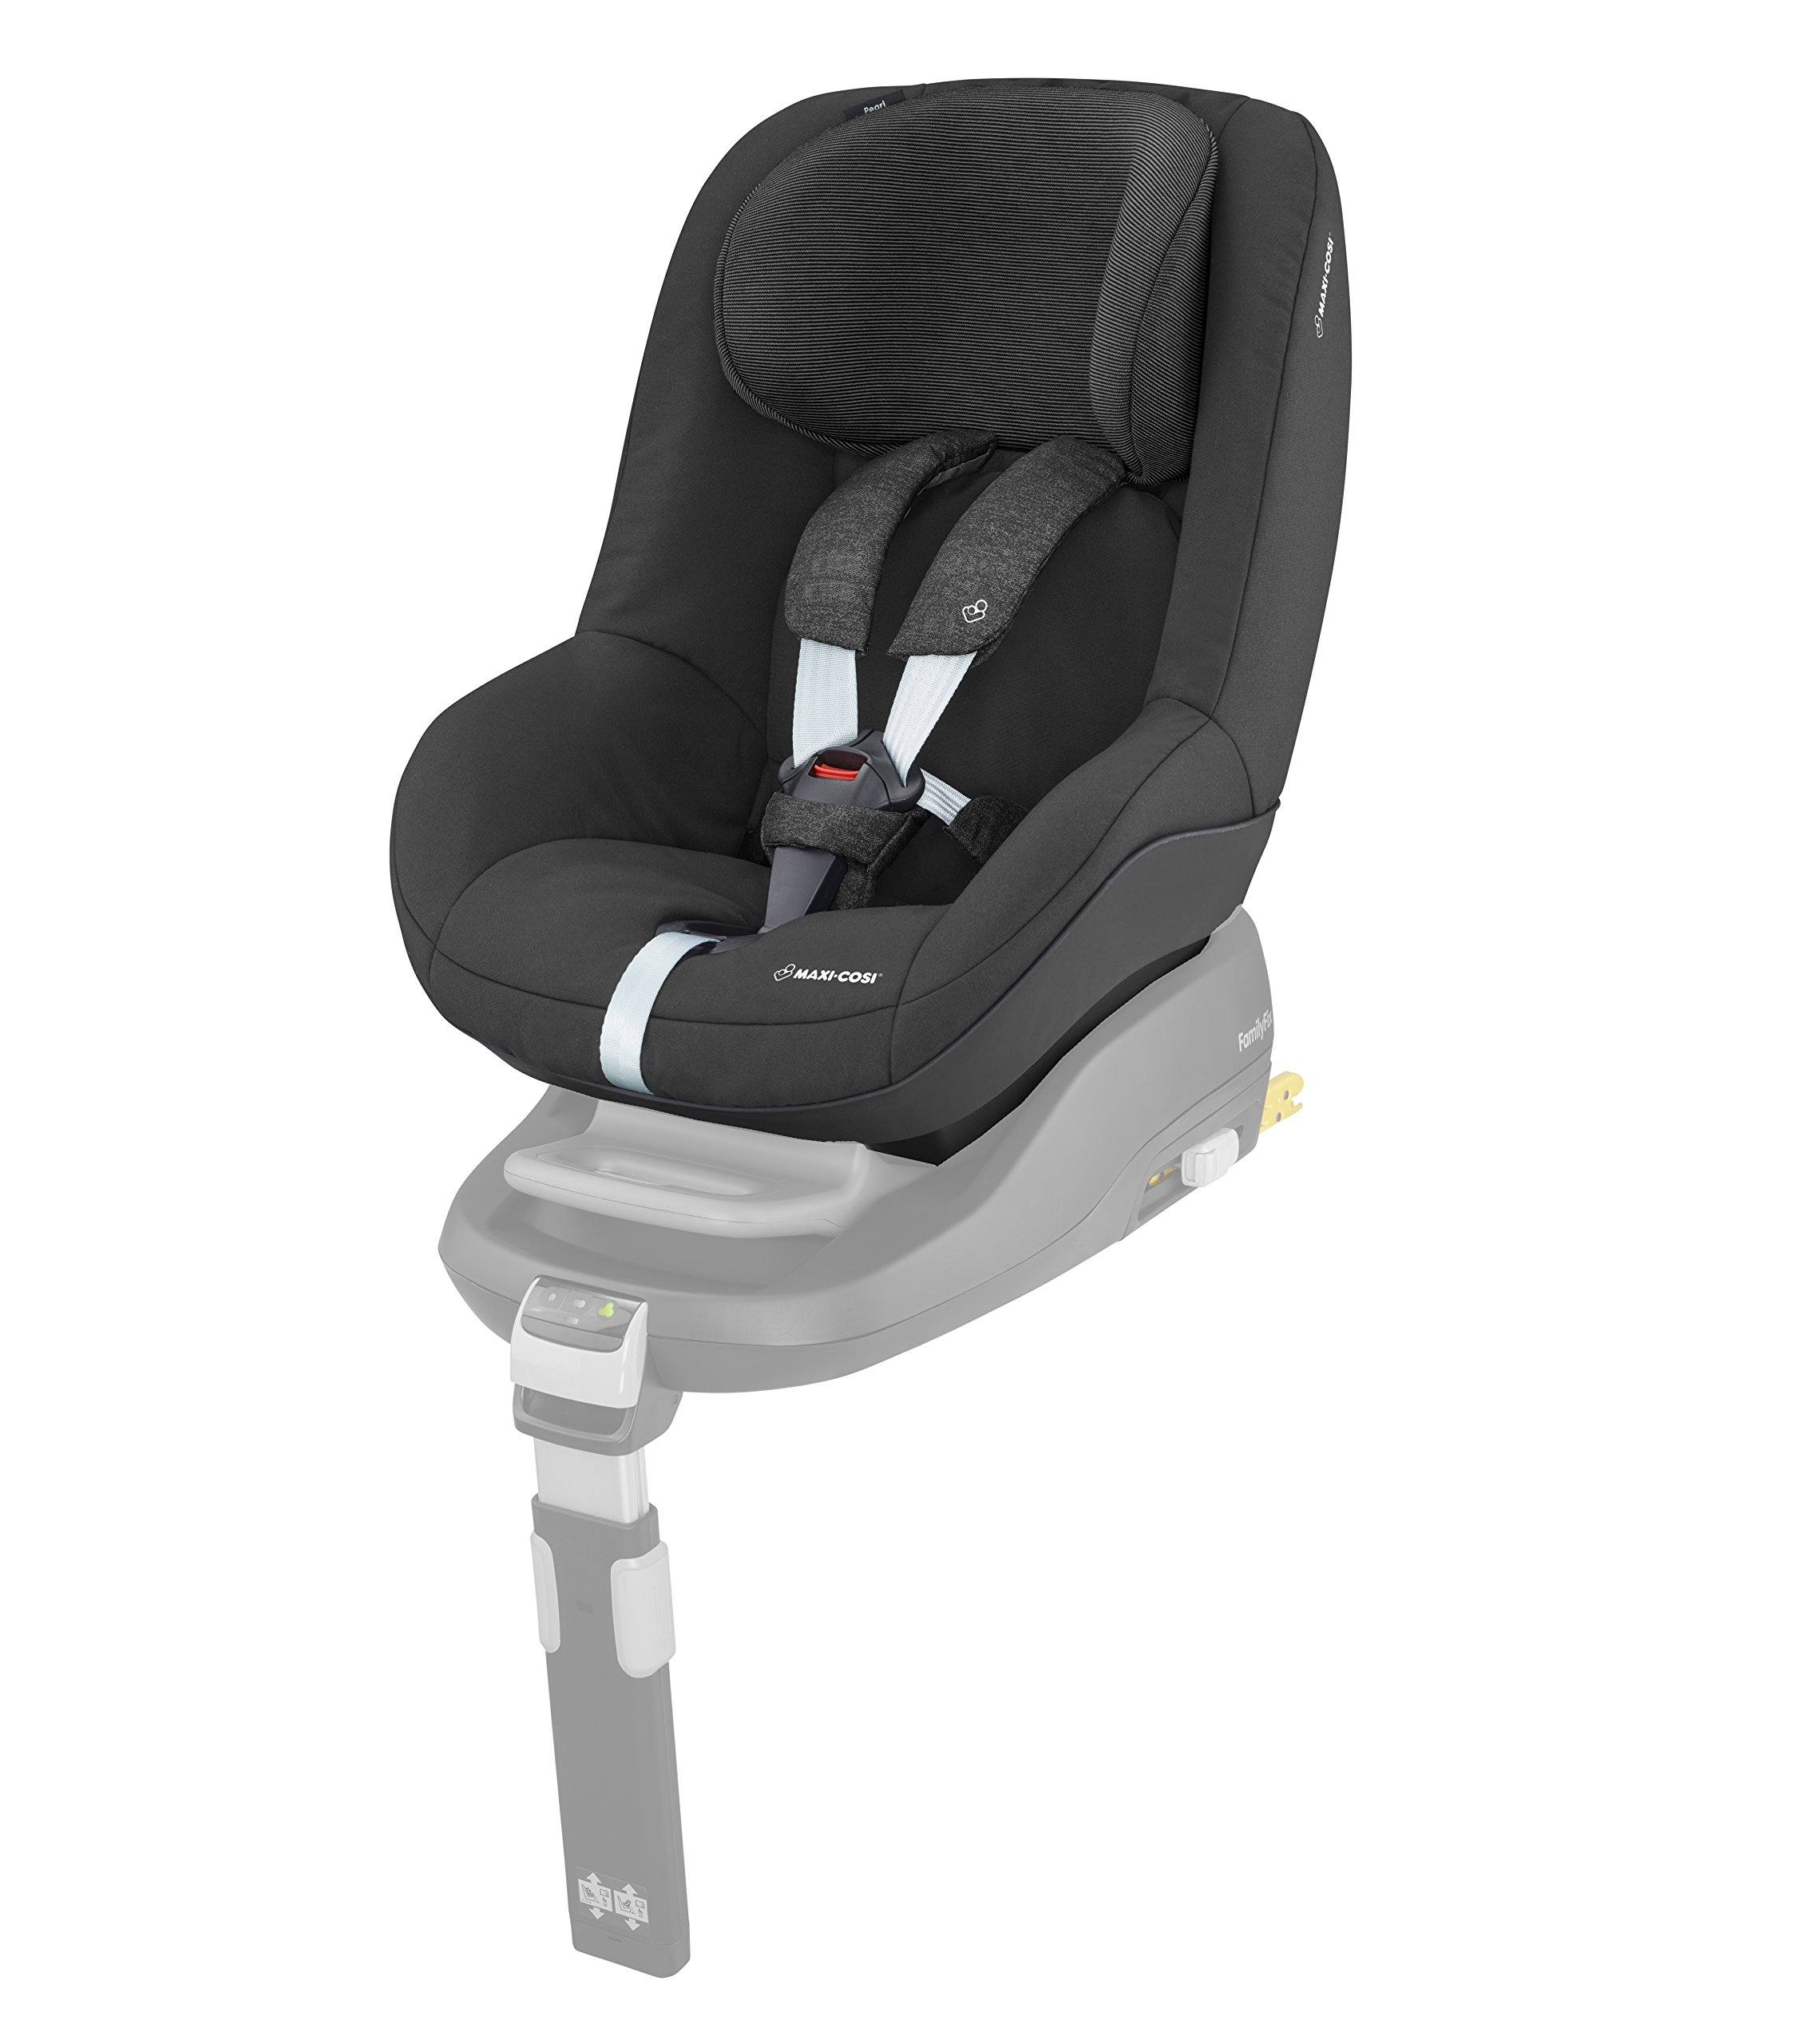 Maxi-Cosi Pearl Toddler Car Seat Group 1, ISOFIX Car Seat, Compact, , 9 Months - 4 Years, 9-18 kg, Nomad Black Maxi-Cosi Interactive visual and audible feedback when the pearl is correctly installed with the maxi-cosi family fix base in the car Spring-loaded, stay open harness to make buckling up your toddler easier as the harness stays out of the way Simultaneous harness & headrest adjustment can be operated with one-hand 1